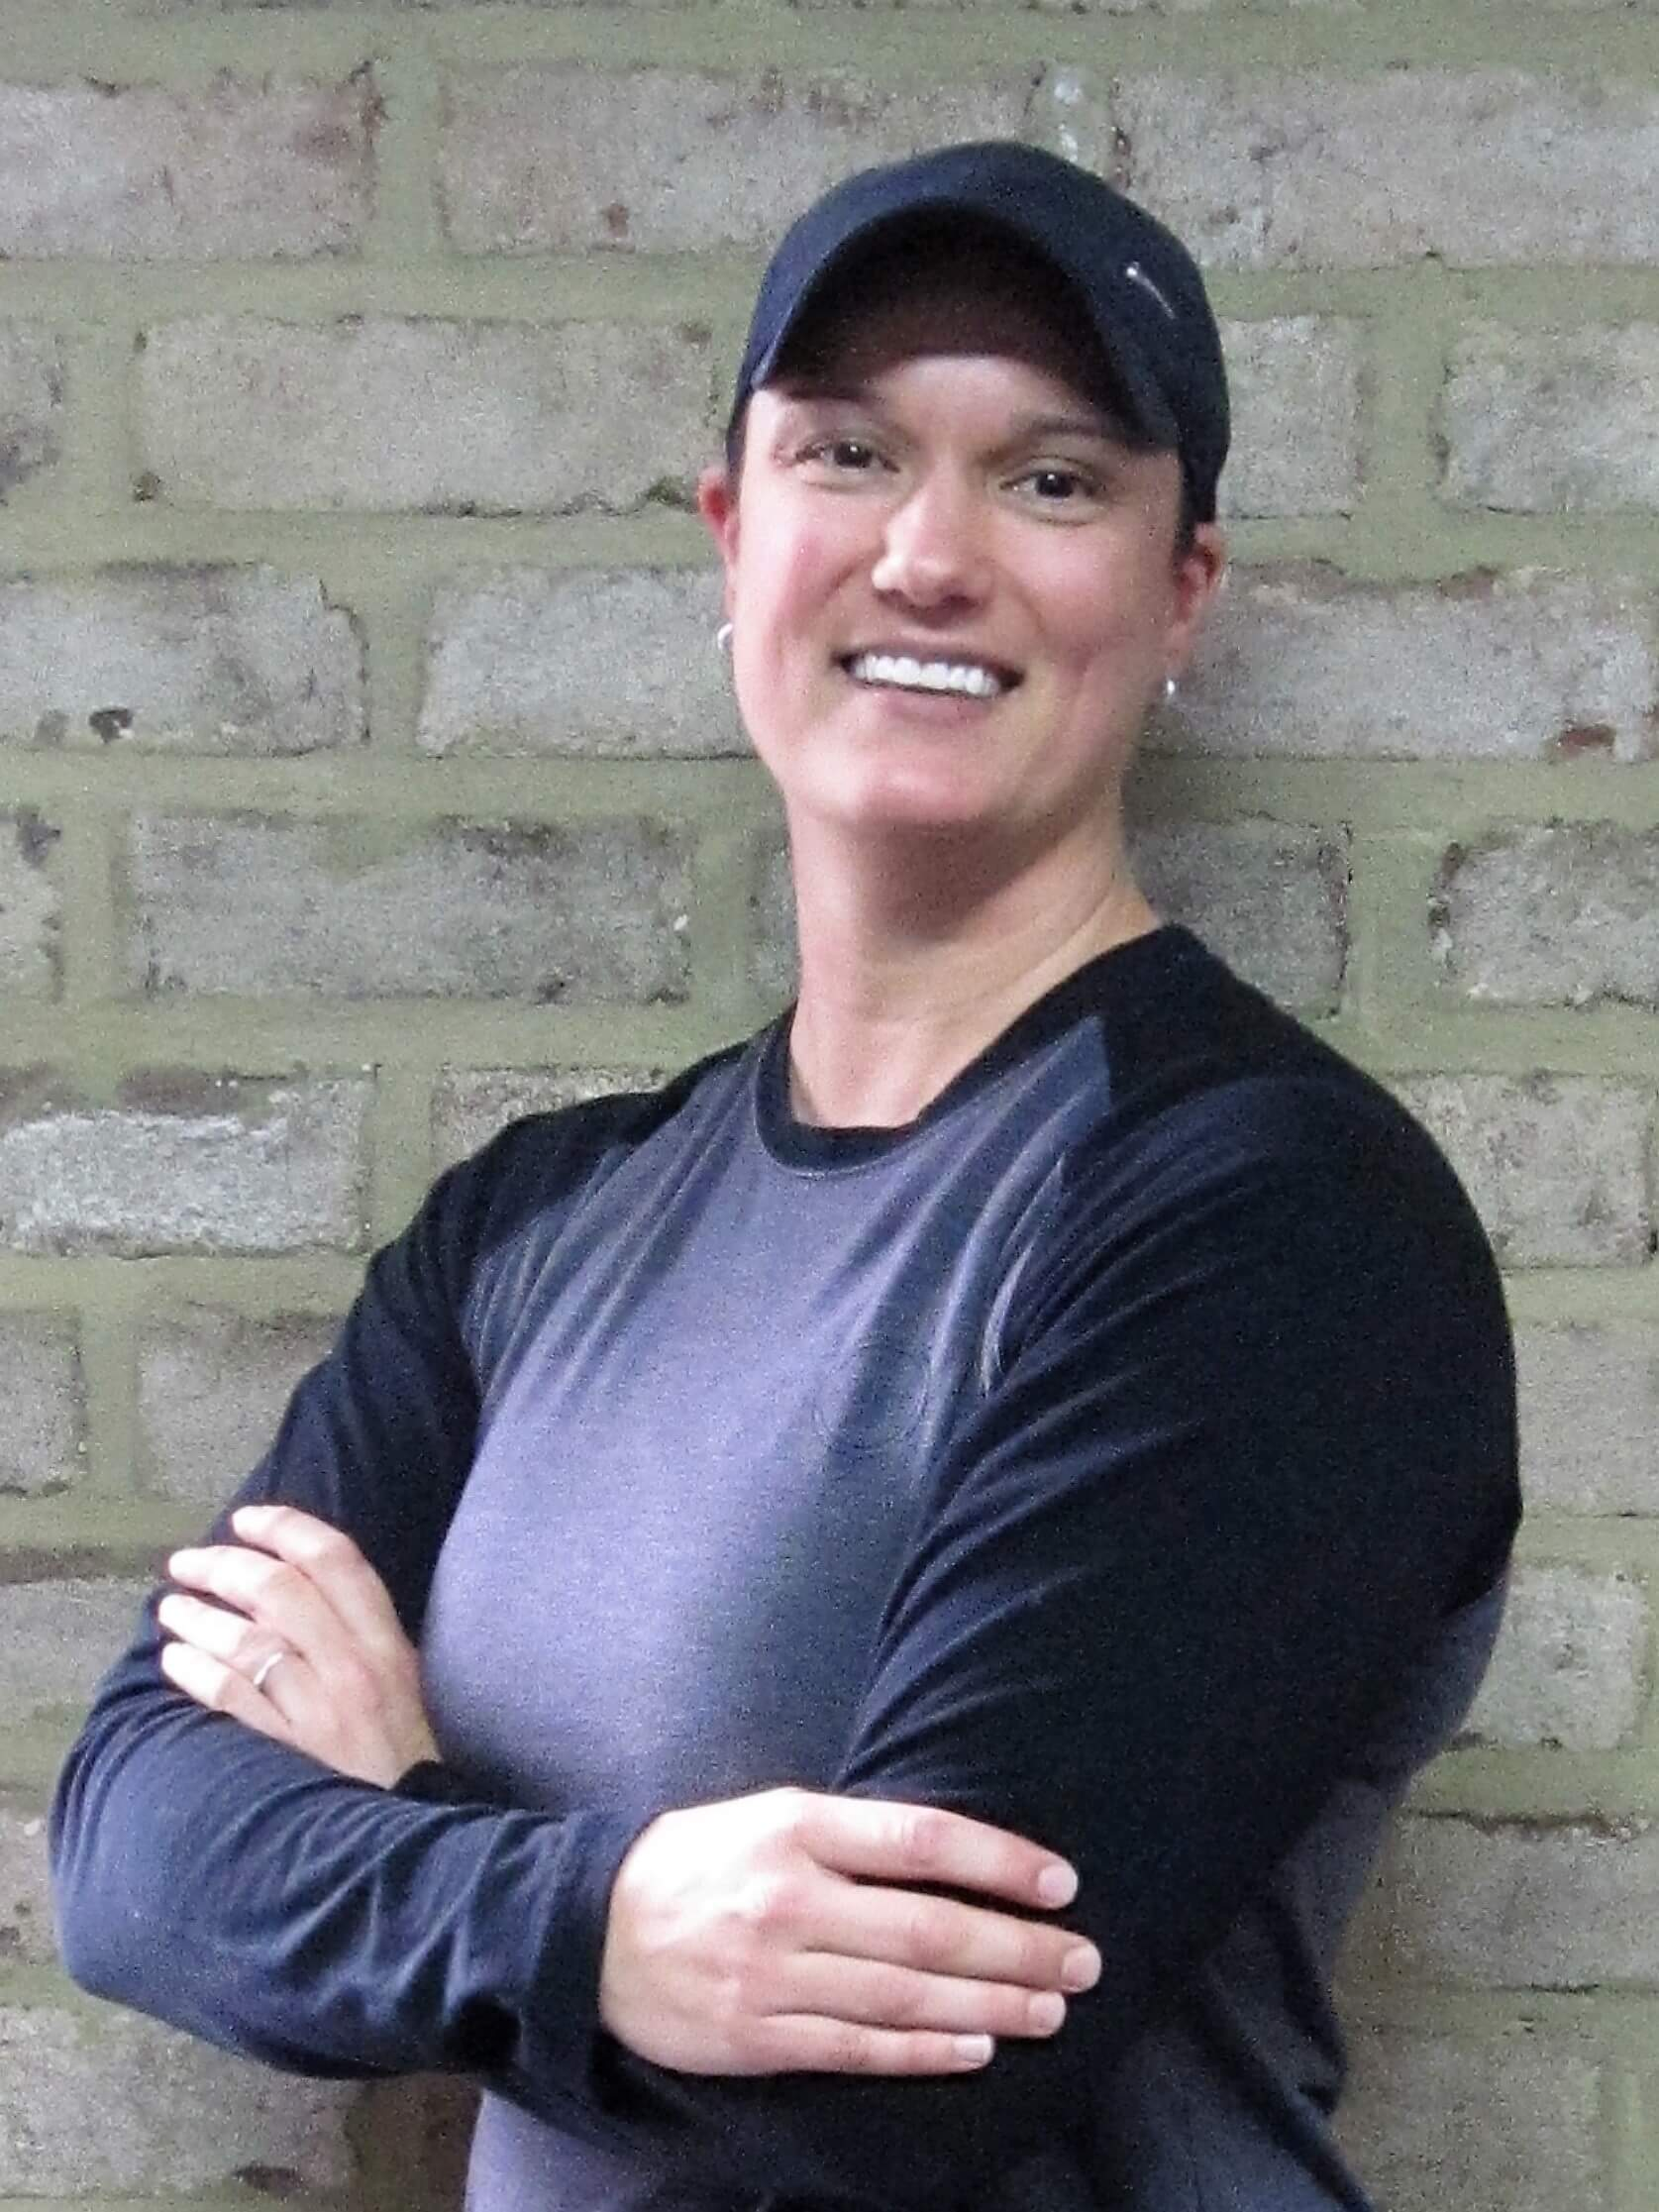 Karen Peden - Karen Peden graduated from The University of Houston with a Bachelor of Science degree in Exercise Science/Kinesiology. She's been training for 19 years around the Houston area. Karen is certified through National Exercise & Sports Trainers Association (NESTA) and TRX. She specializes in high intensity interval training (HITT) and general fitness. Karen loves helping people reach their personal fitness goals and encouraging people to improve their daily lives through fitness.KPeden19@gmail.com